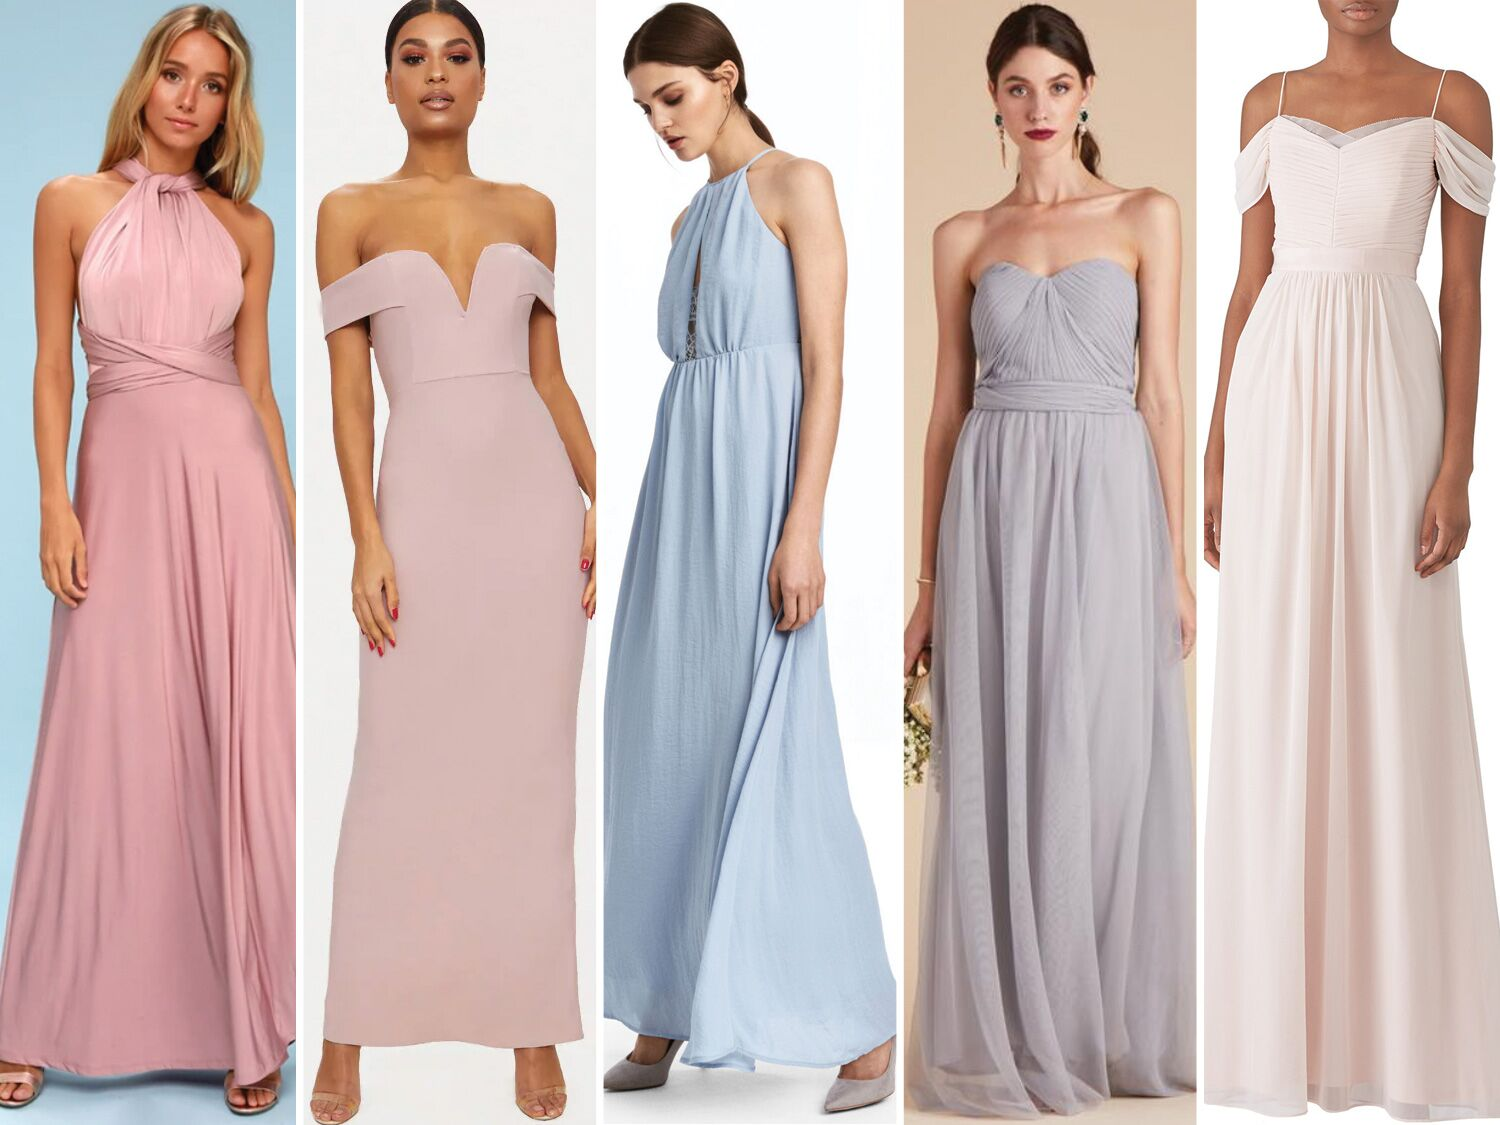 002685e5628 55 Affordable Bridesmaid Dresses That Don t Look Cheap